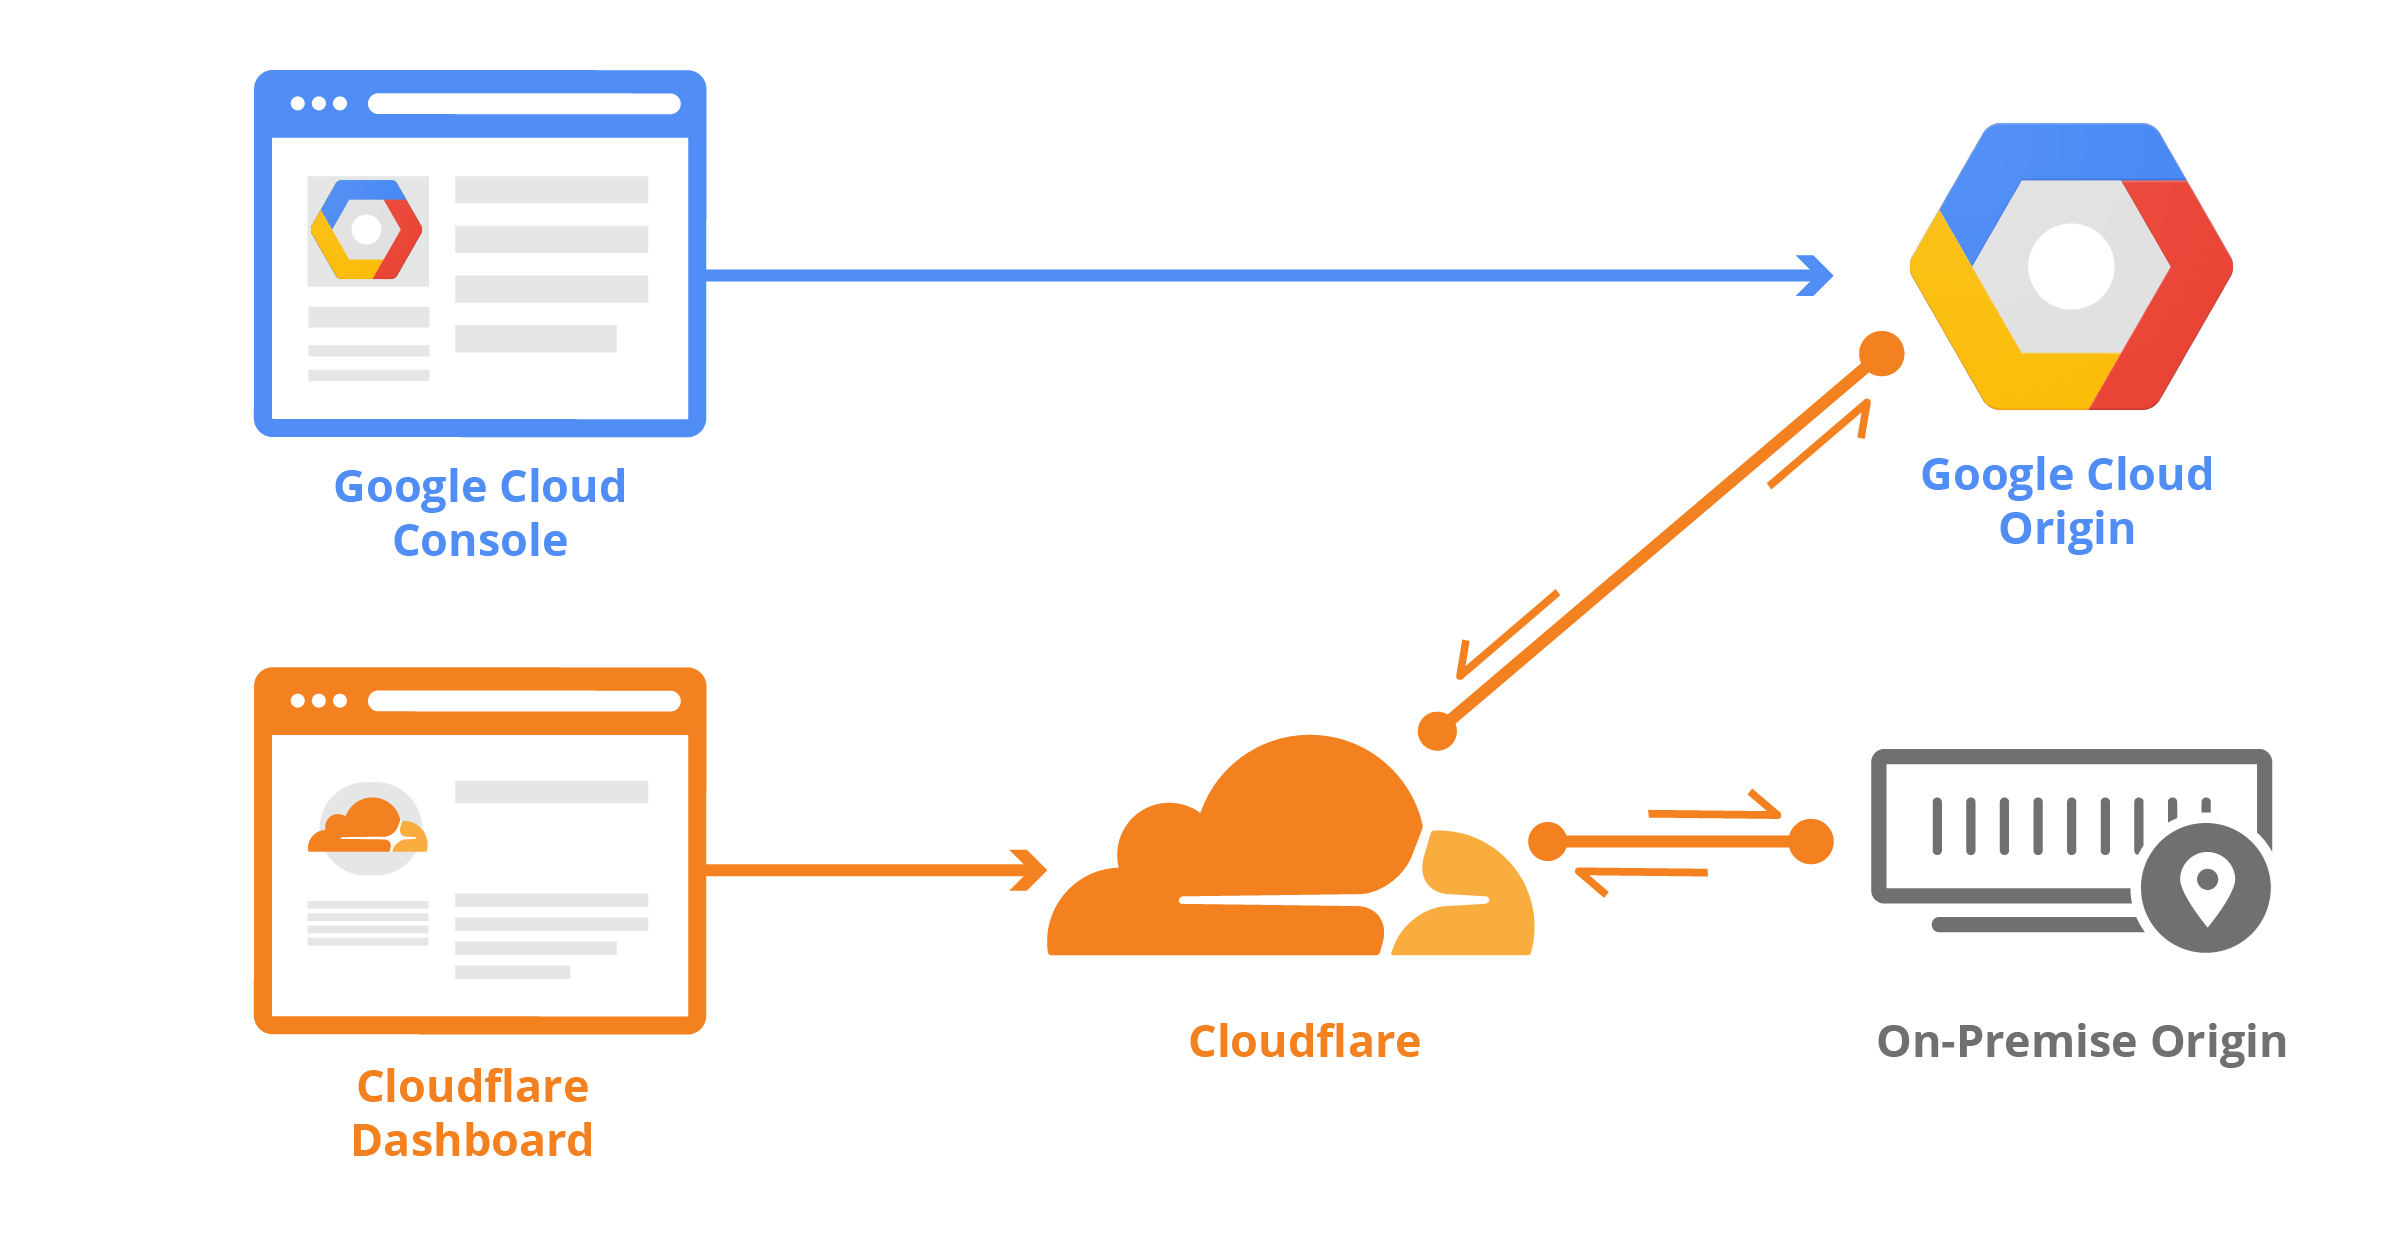 Getting started with Terraform and Cloudflare (Part 1 of 2)